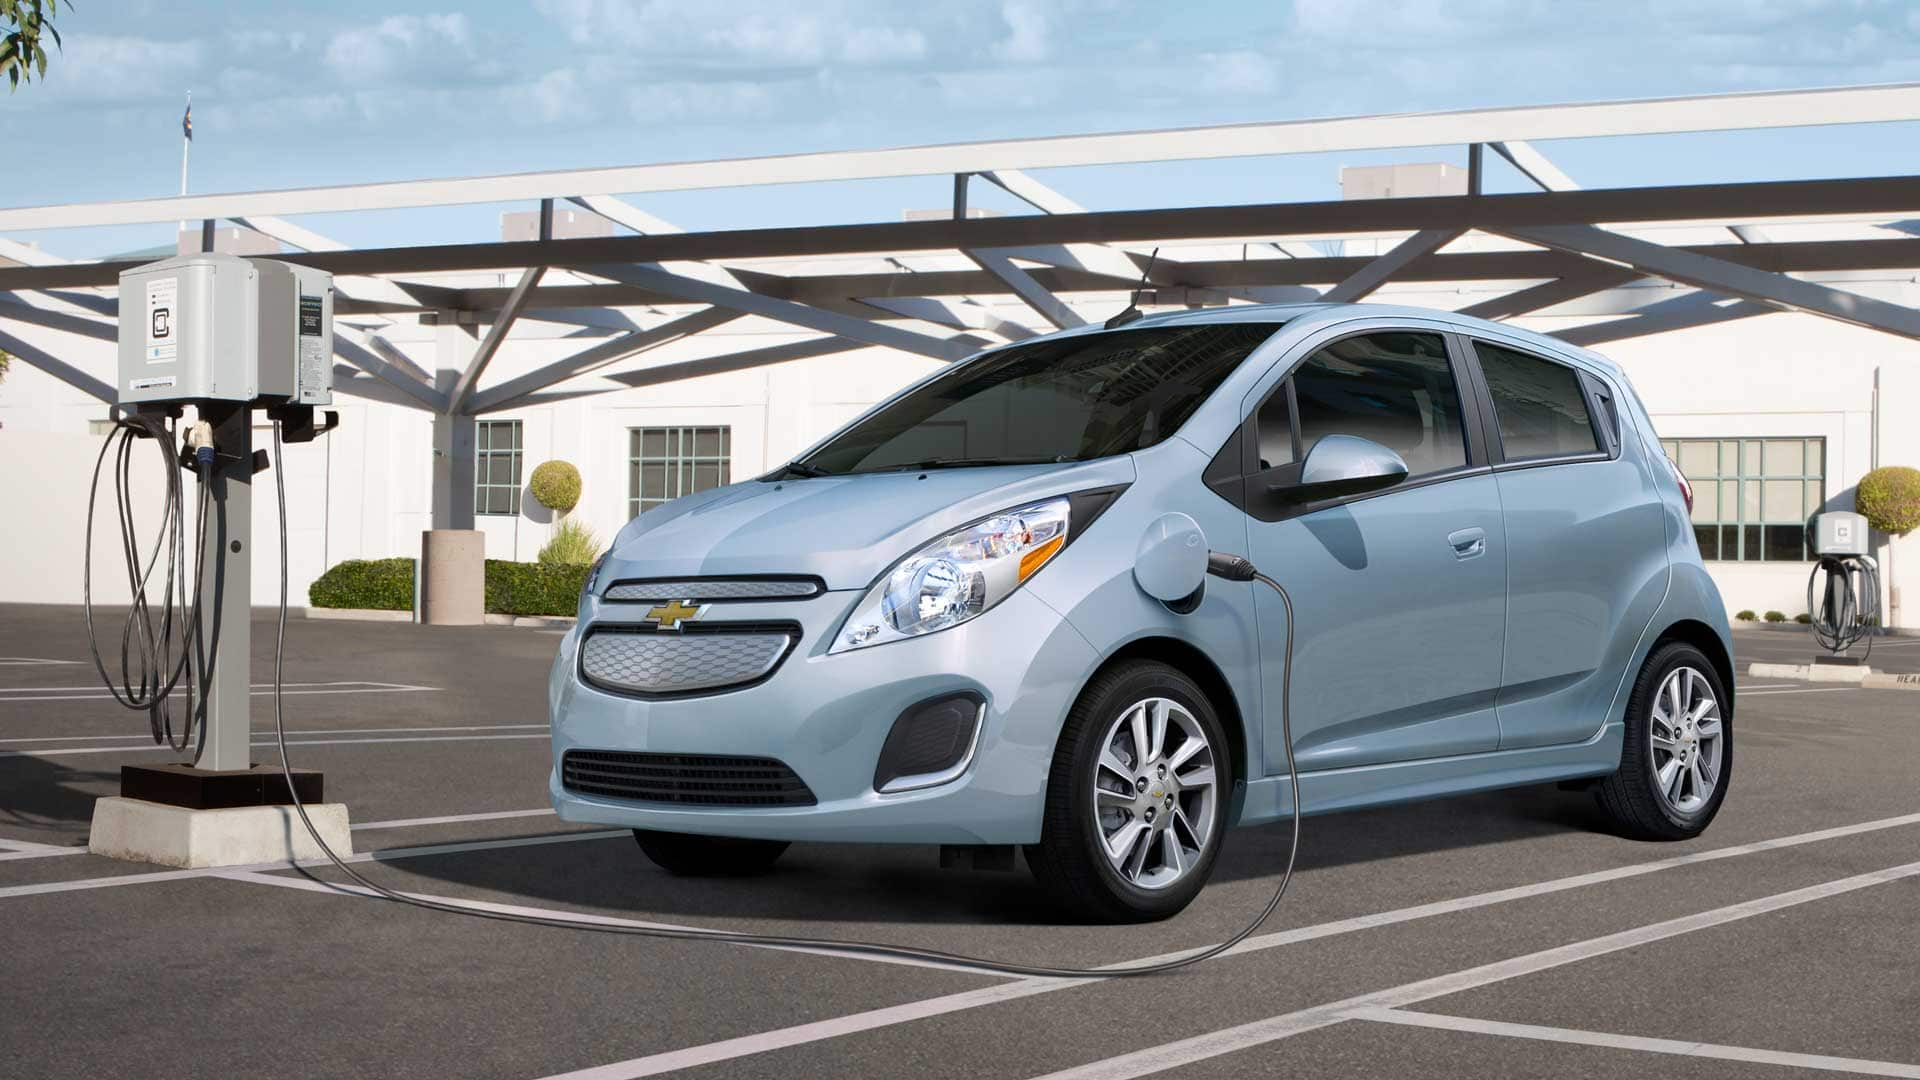 2014 Chevrolet Spark Electric Vehicle EV Launches This Summer